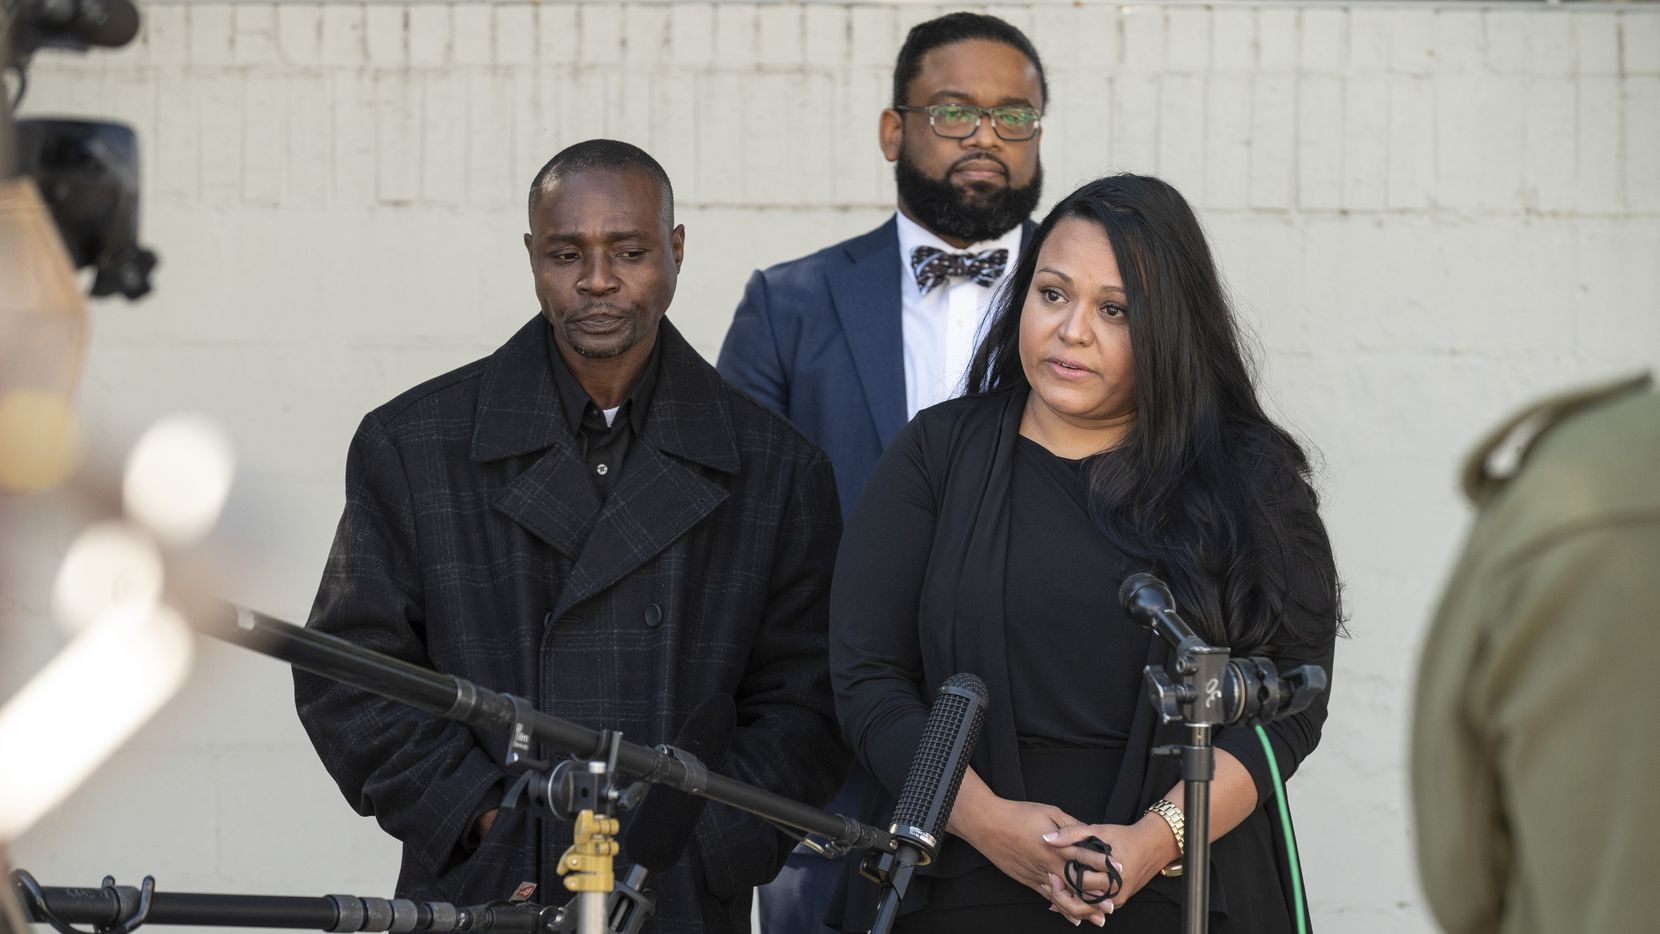 Attorney Larry Taylor, background, listens to Timonthy Matts, left, and Vanessa Calderon, right, the parents of Deja and Abbaney Matts, speak about their lawsuit against Texas A&M University-Commerce after their daughters were killed in a dorm room in February, on Tuesday, Dec. 08, 2020 in Dallas.